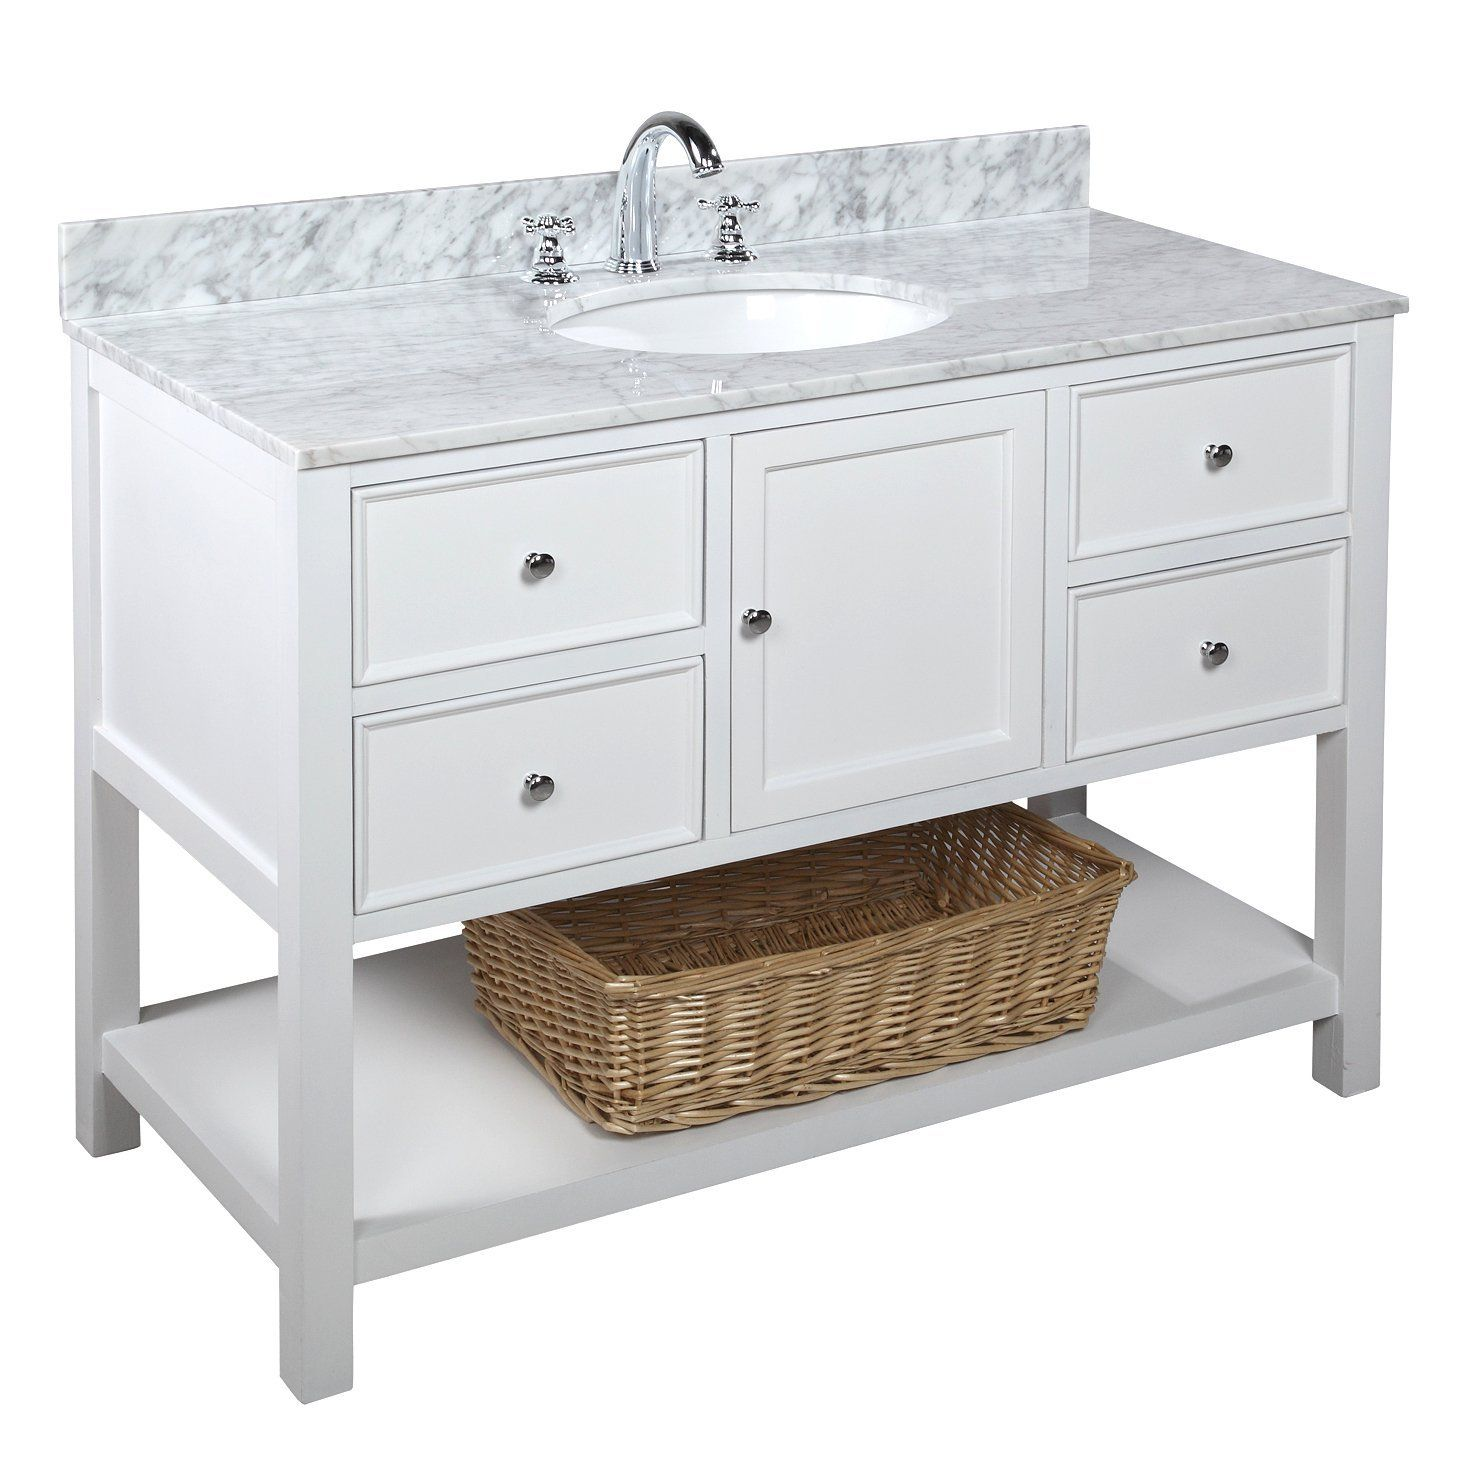 48 inch bathroom vanity we love bathroom and all the inspiring pics to realize some of your greatest home design get 48 inch bathroom vanity news home